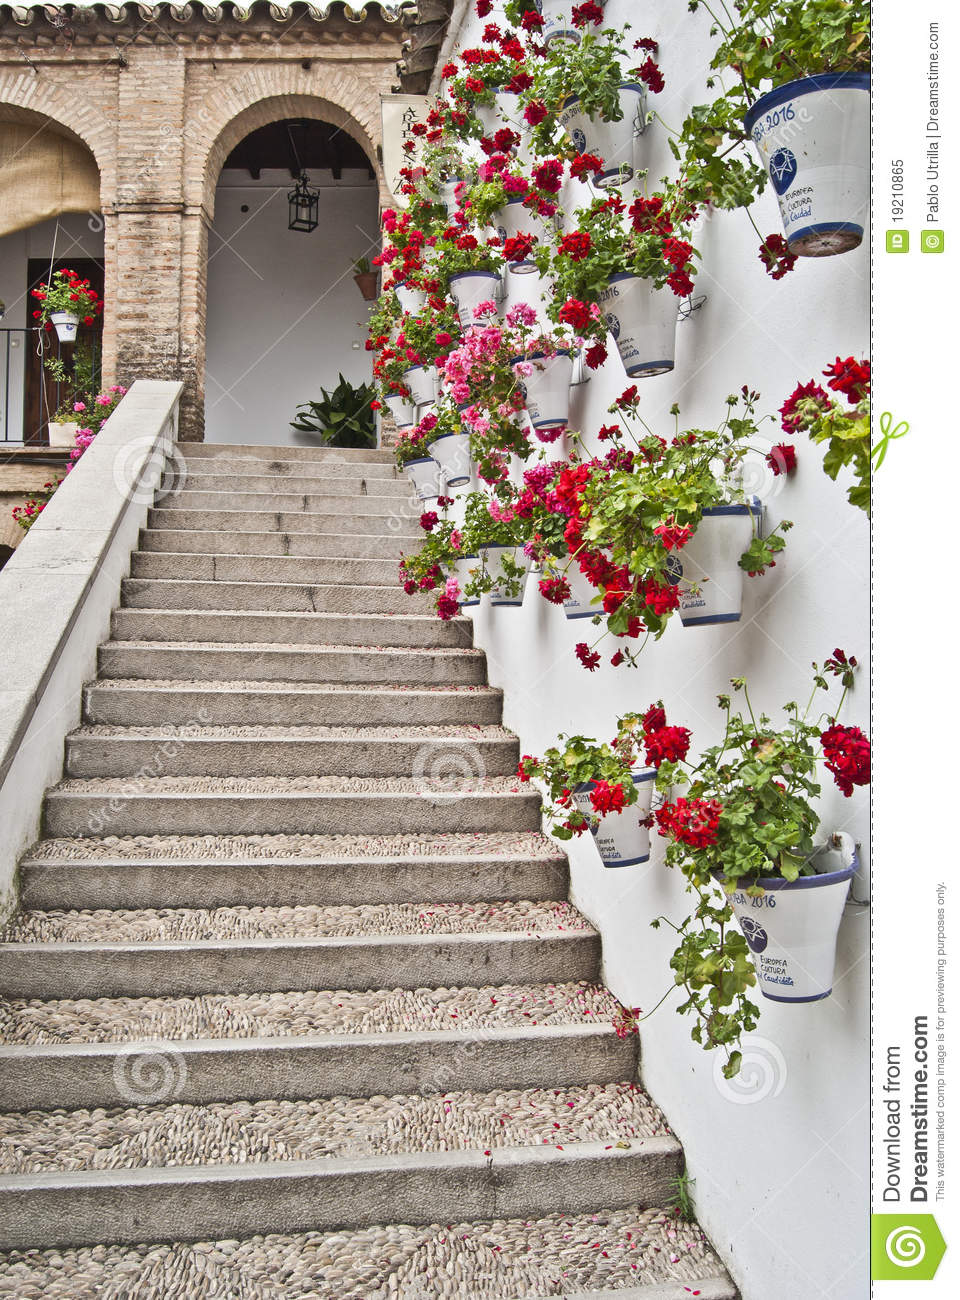 Stairs whith geraniums royalty free stock photo image 19210865 - Care geraniums flourishing balcony porch ...